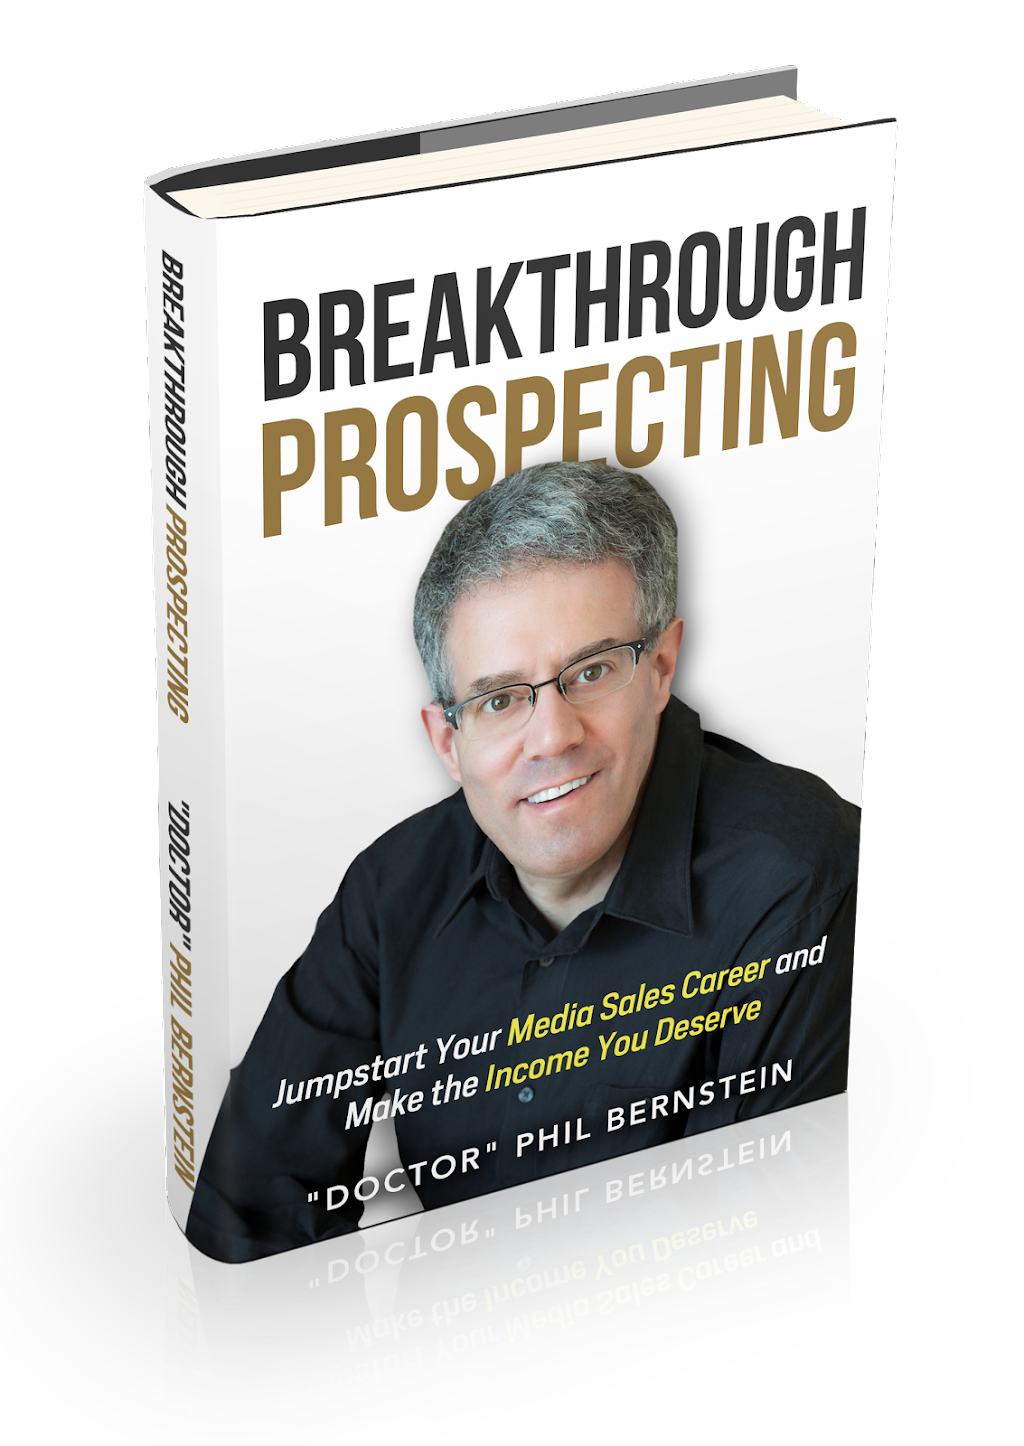 Best Radio Advertising Sales Book: Breakthrough Prospecting